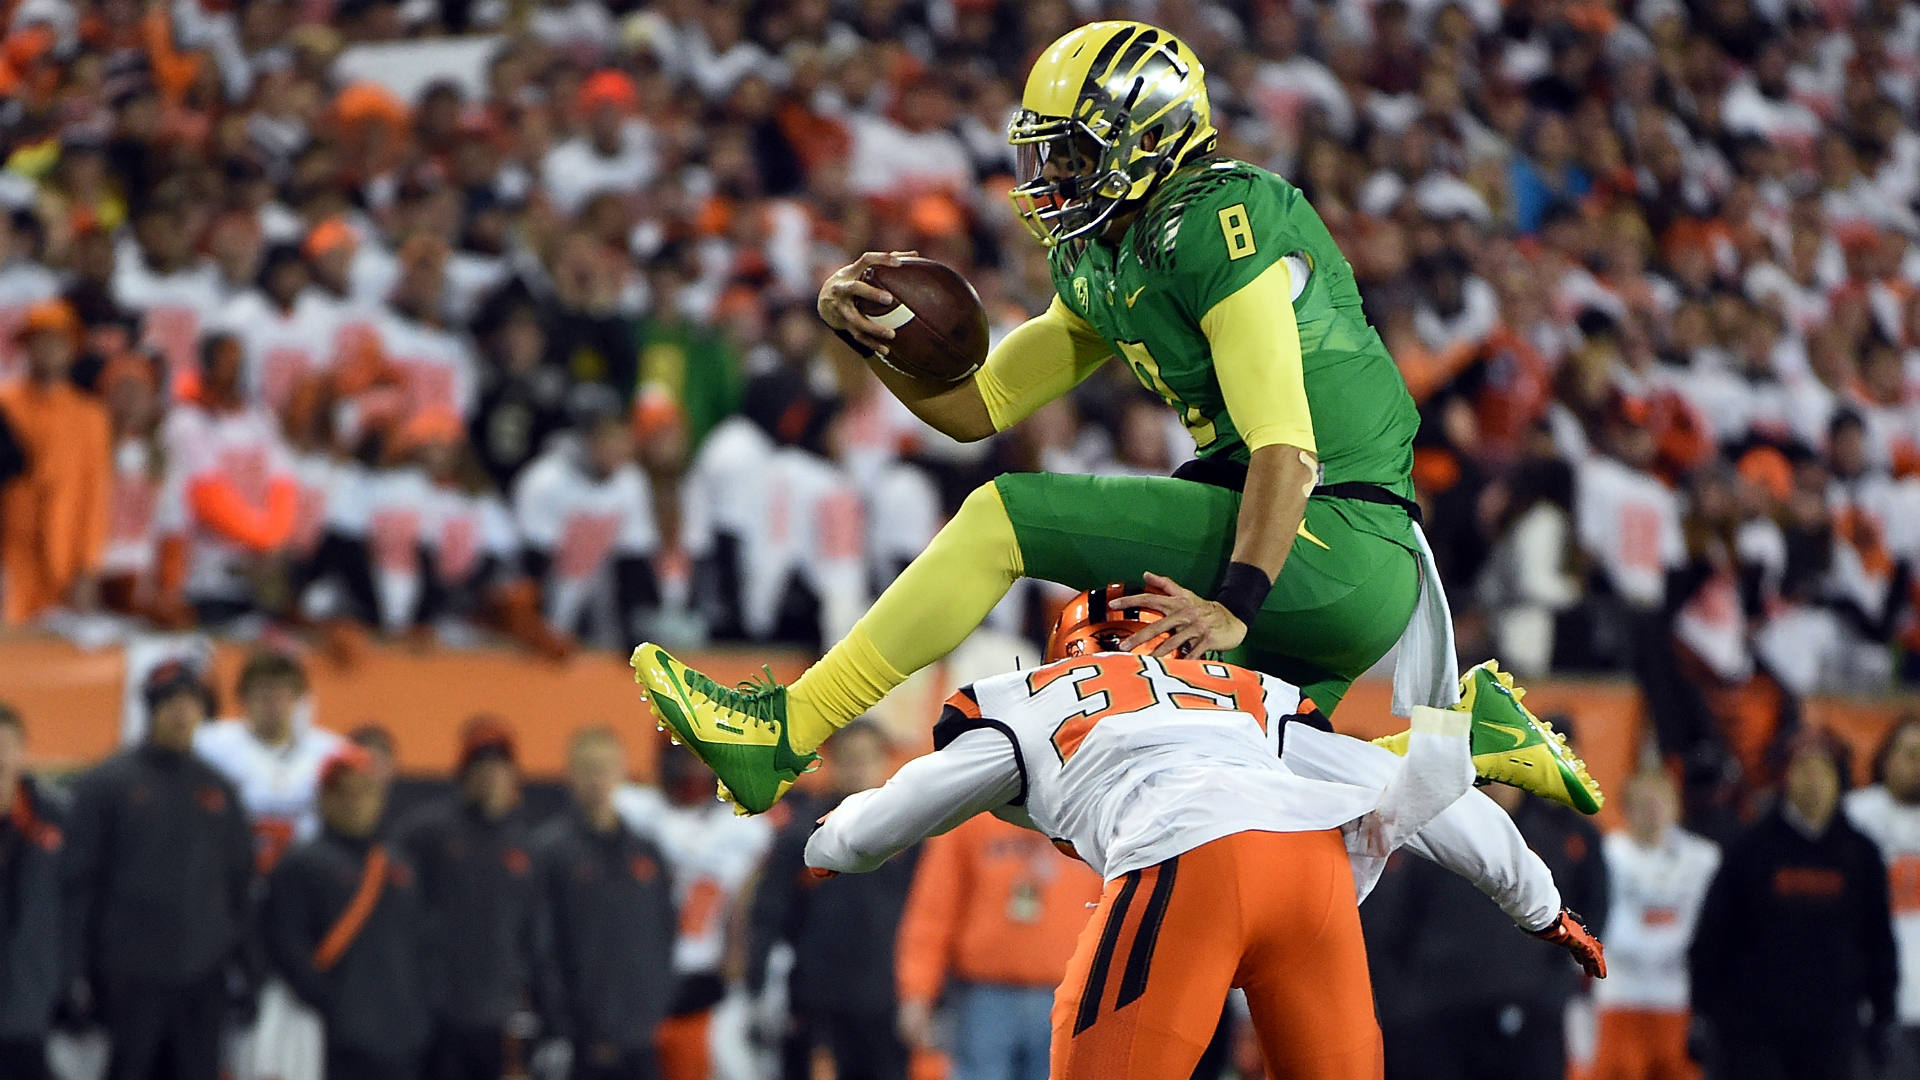 Marcus-Mariota-FTR-112914-GETTY